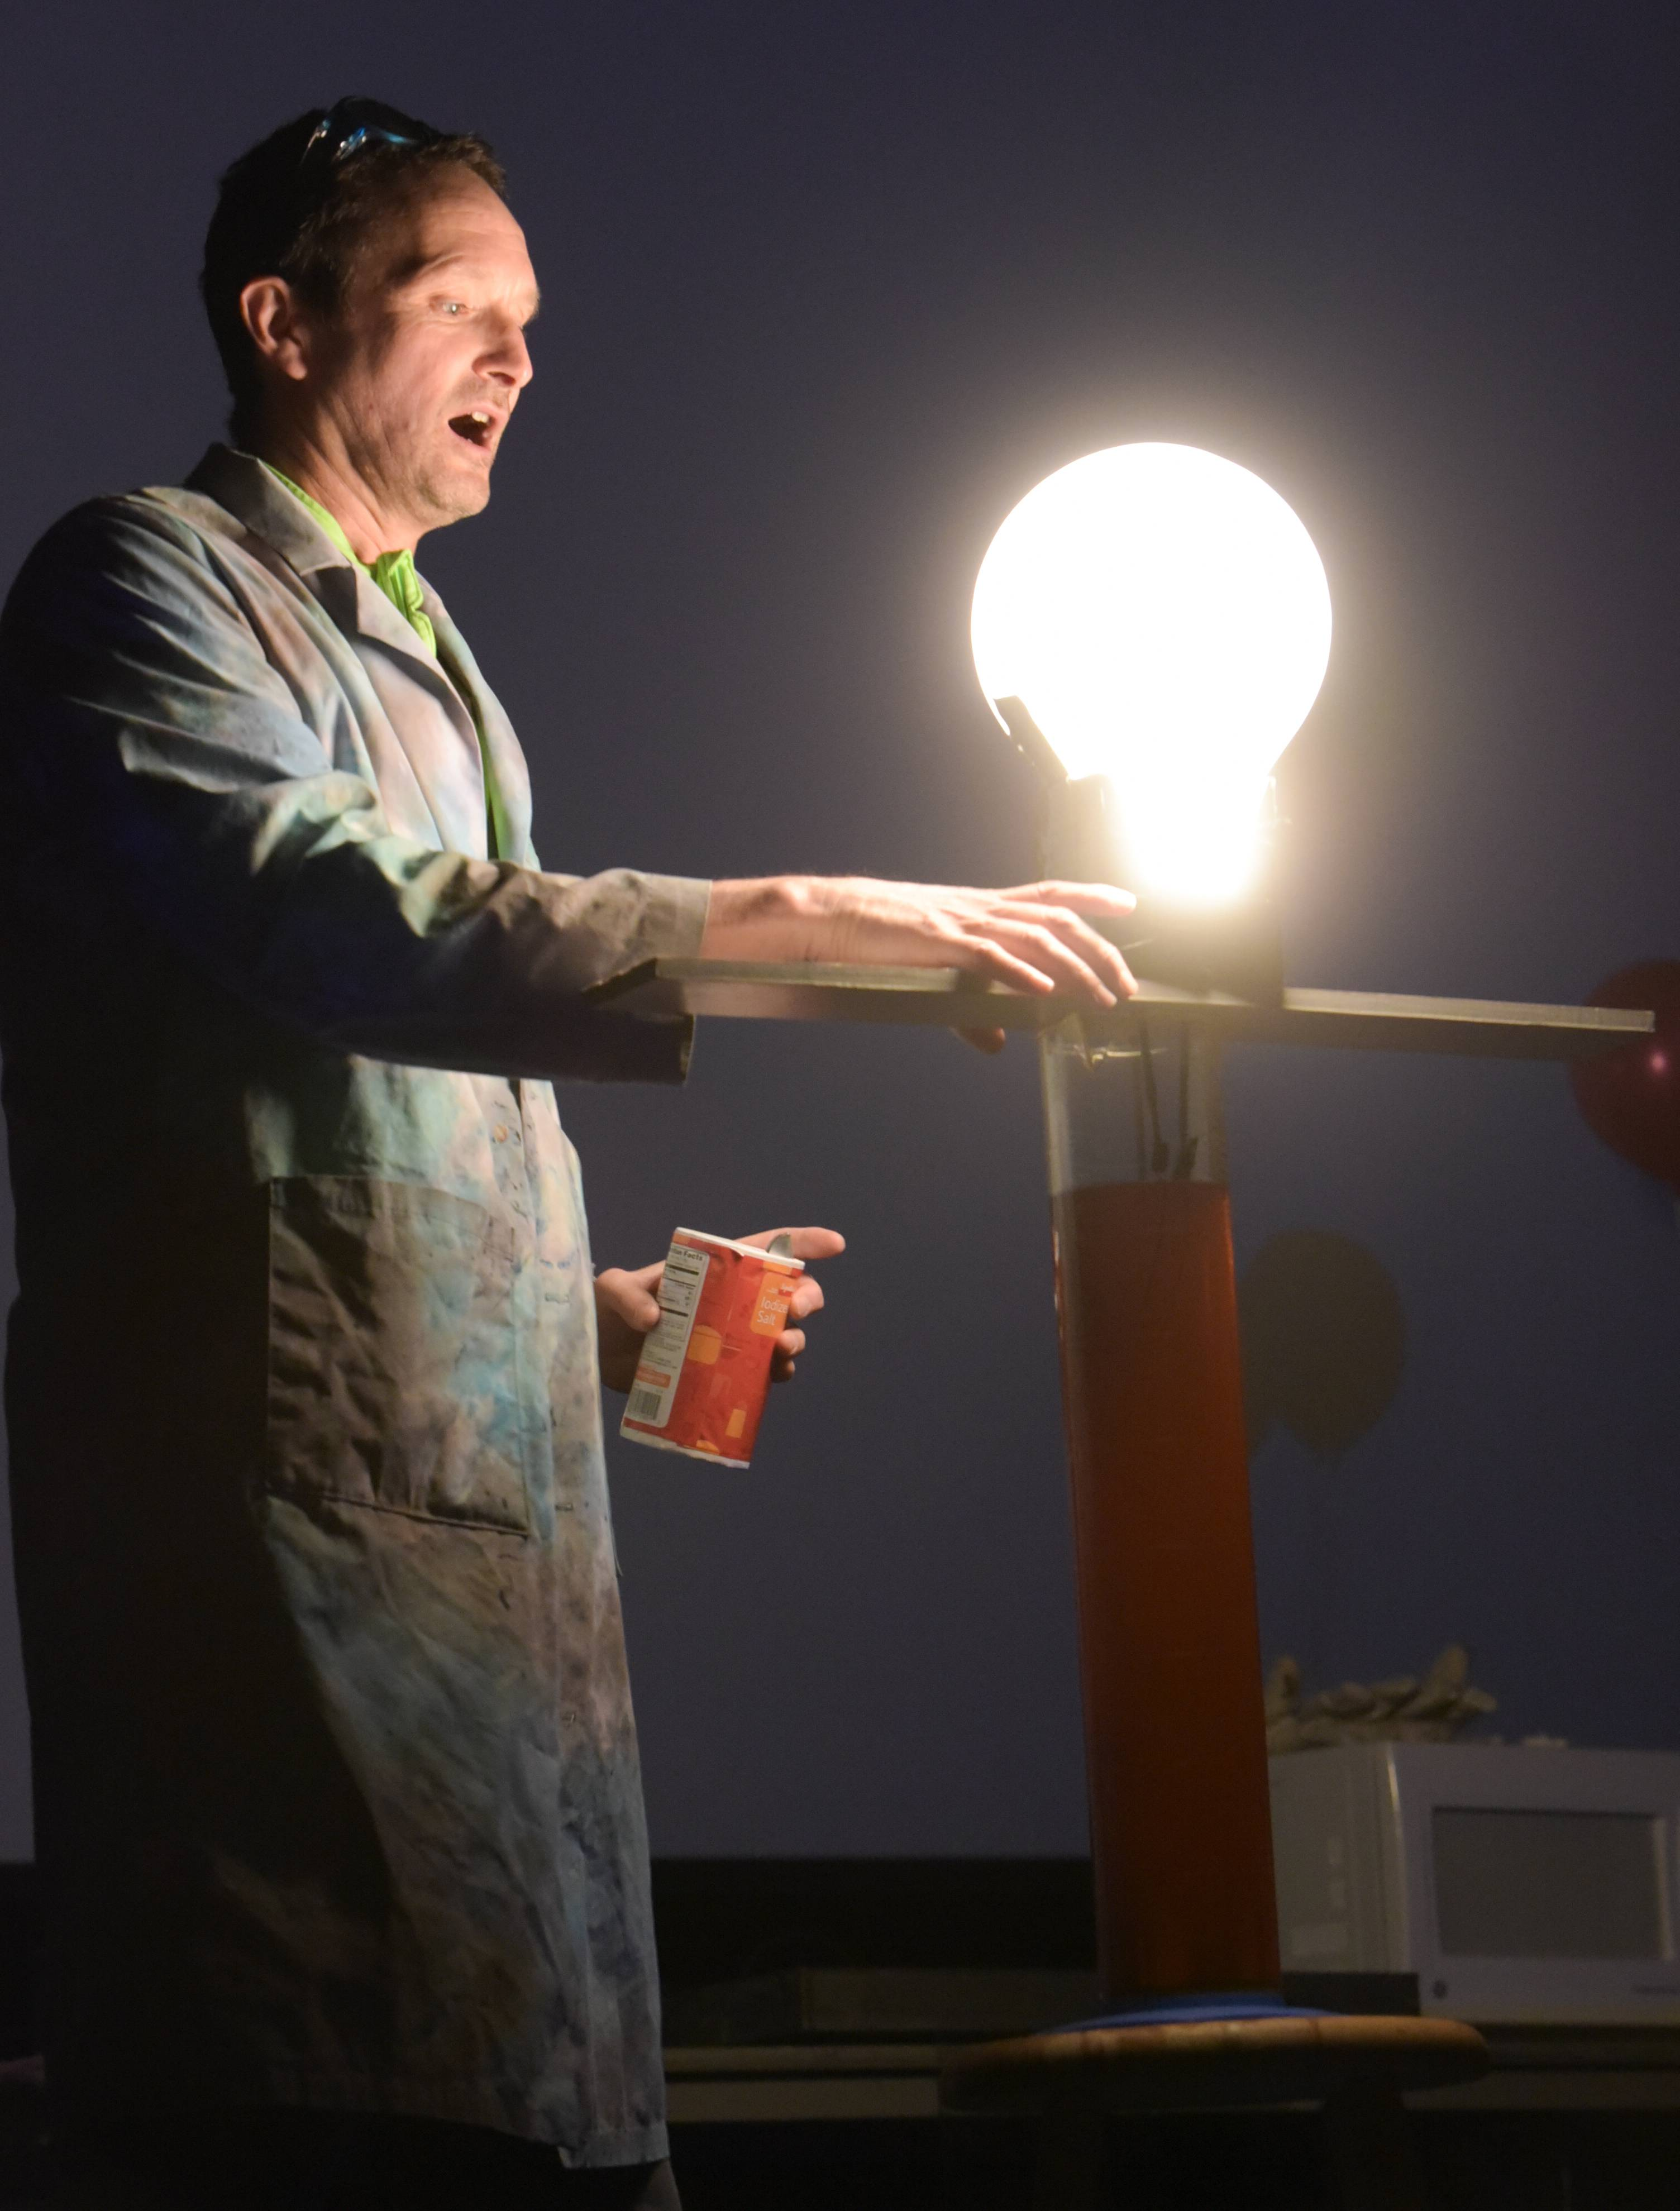 Bill Grosser, teacher at Oak Park and River Forest High School, uses electrolytes, salt and water to conduct electricity to light up a light bulb during the 30th annual Wonders of Science at Fermilab in Batavia.